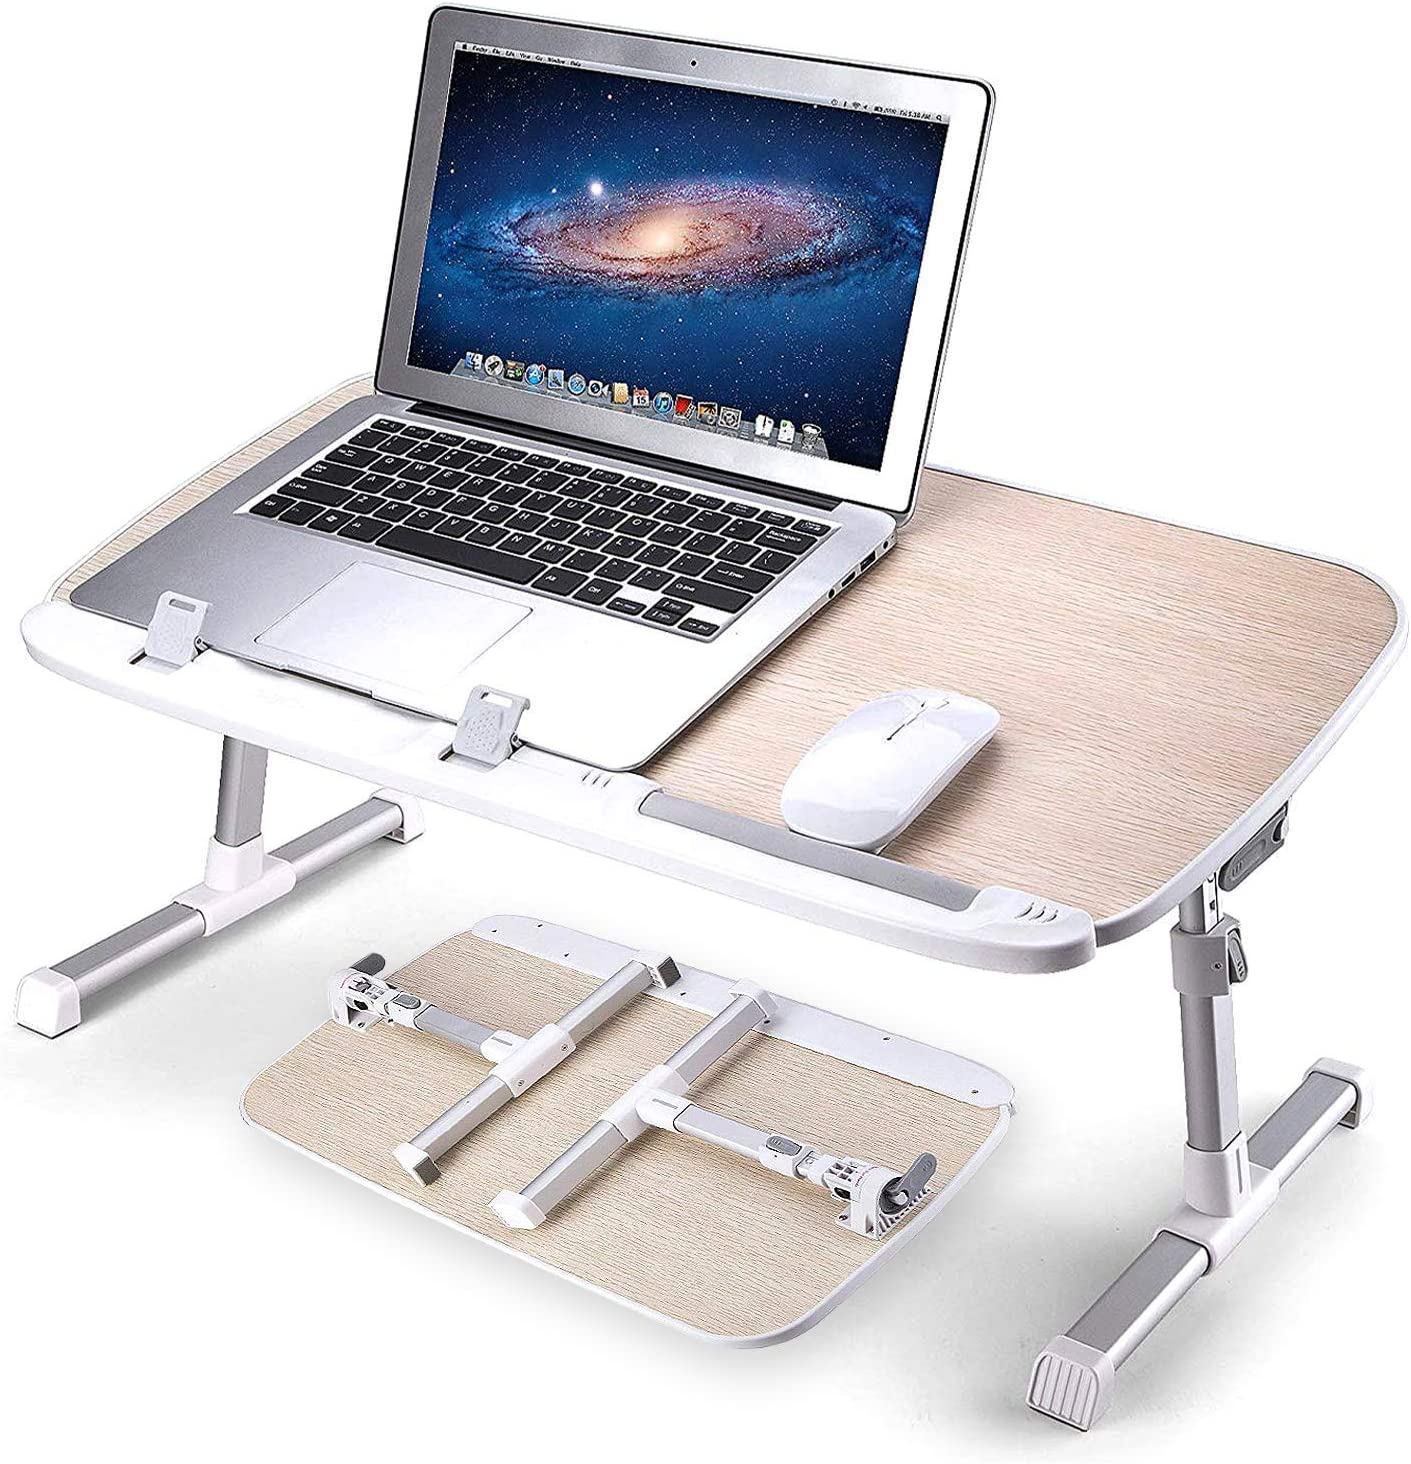 AboveTEK Laptop Bed Tray Table, Adjustable Laptop Bed Stand, Portable Standing Table with Foldable Legs, Foldable Lap Tablet Table for Sofa Couch Floor